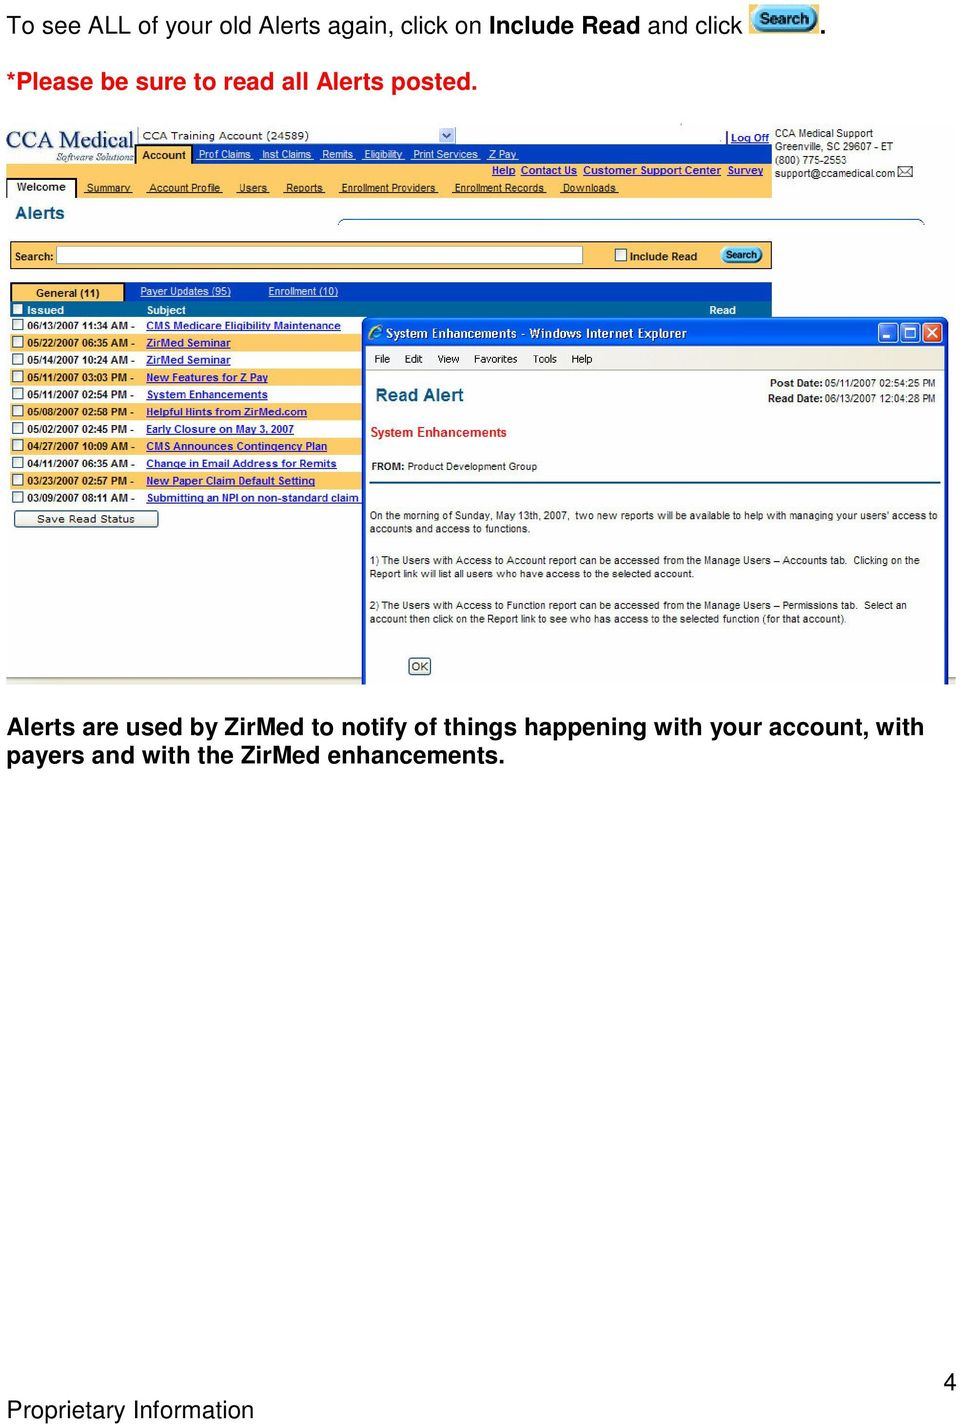 Alerts are used by ZirMed to notify of things happening